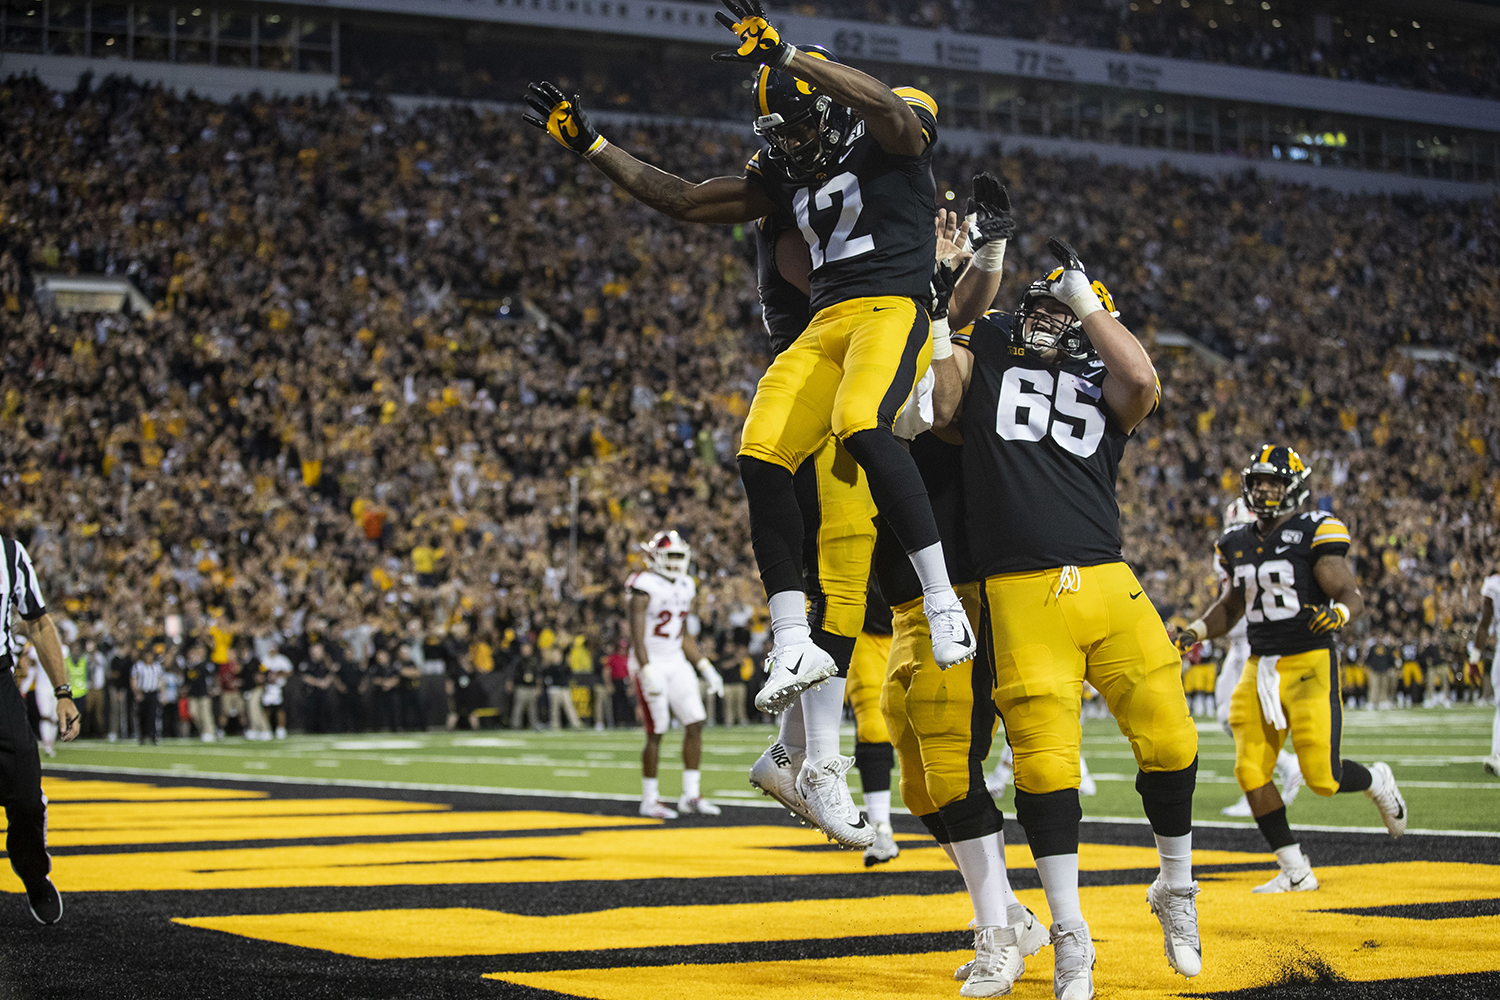 Iowa wide receiver Brandon Smith celebrates making Iowa's first touchdown of the game during Iowa football vs. Miami (Ohio) at Kinnick Stadium on Aug. 31, 2019. Iowa defeated the Miami (Ohio) 38-14.